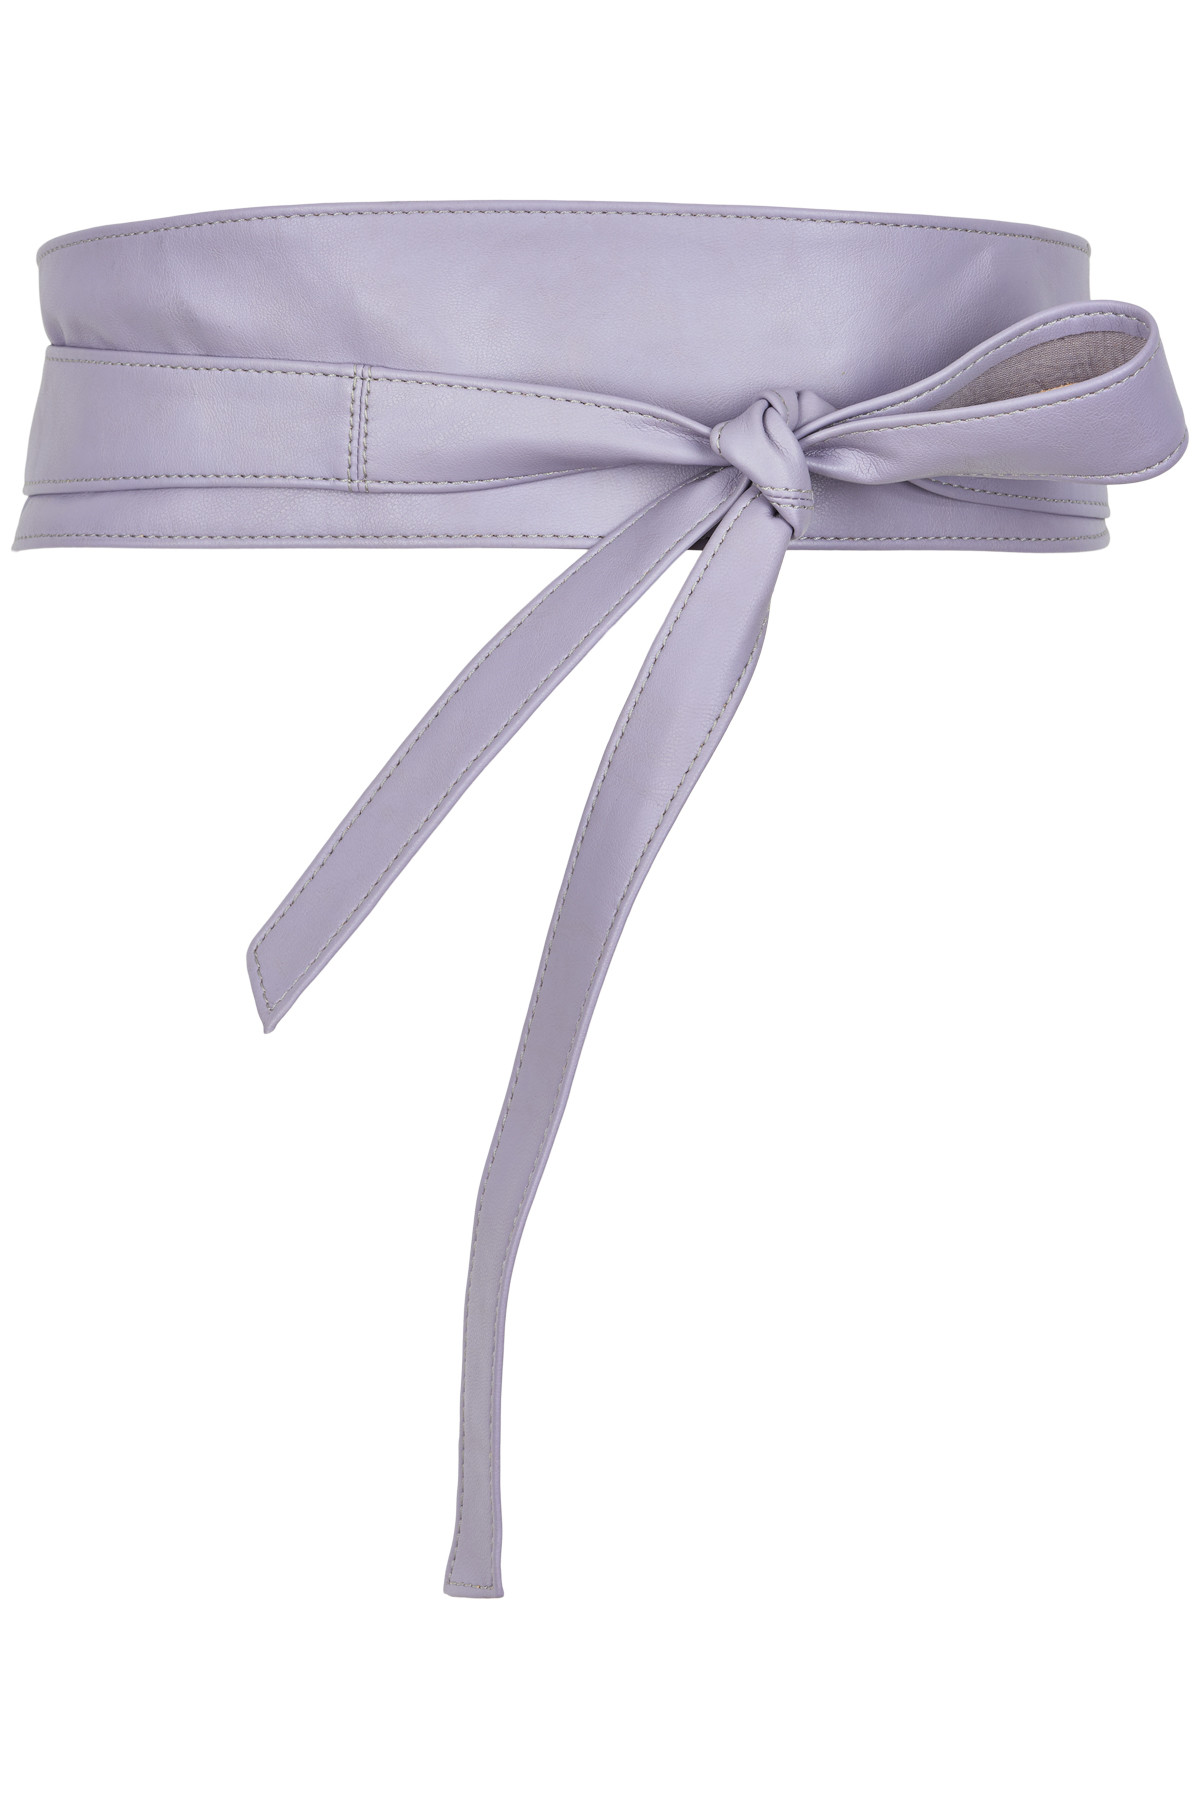 NOA NOA BELT 1-10187-1 01094 (Purple, XL)